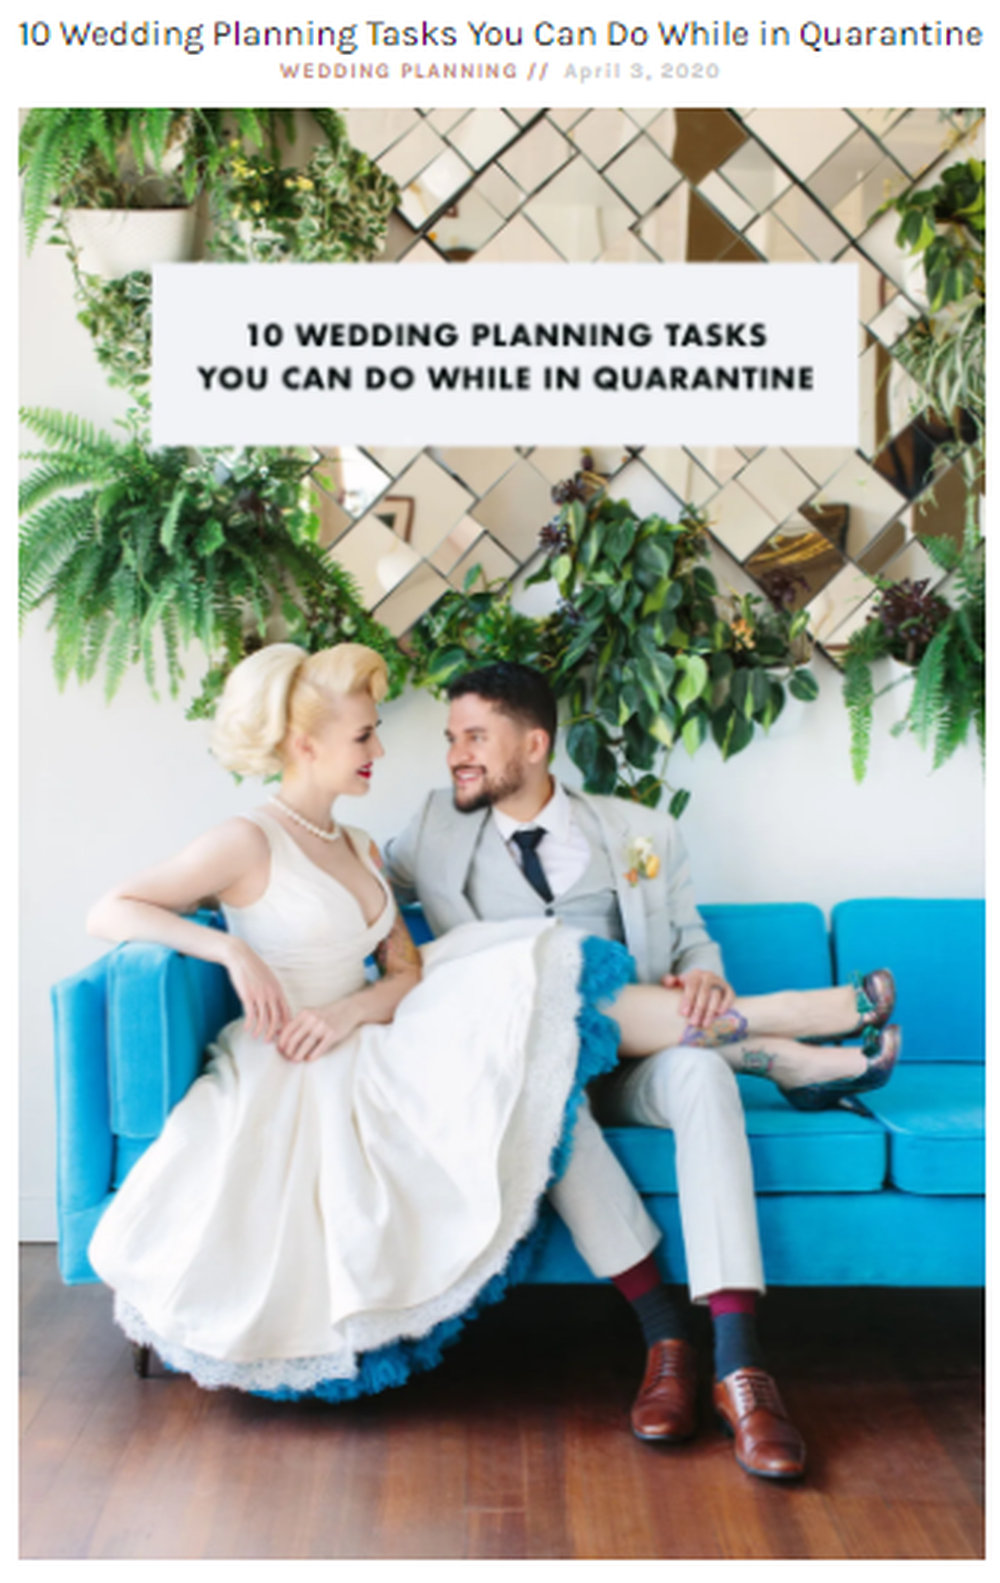 10-Wedding-Planning-Tasks-You-Can-Do-While-in-Quarantine.png